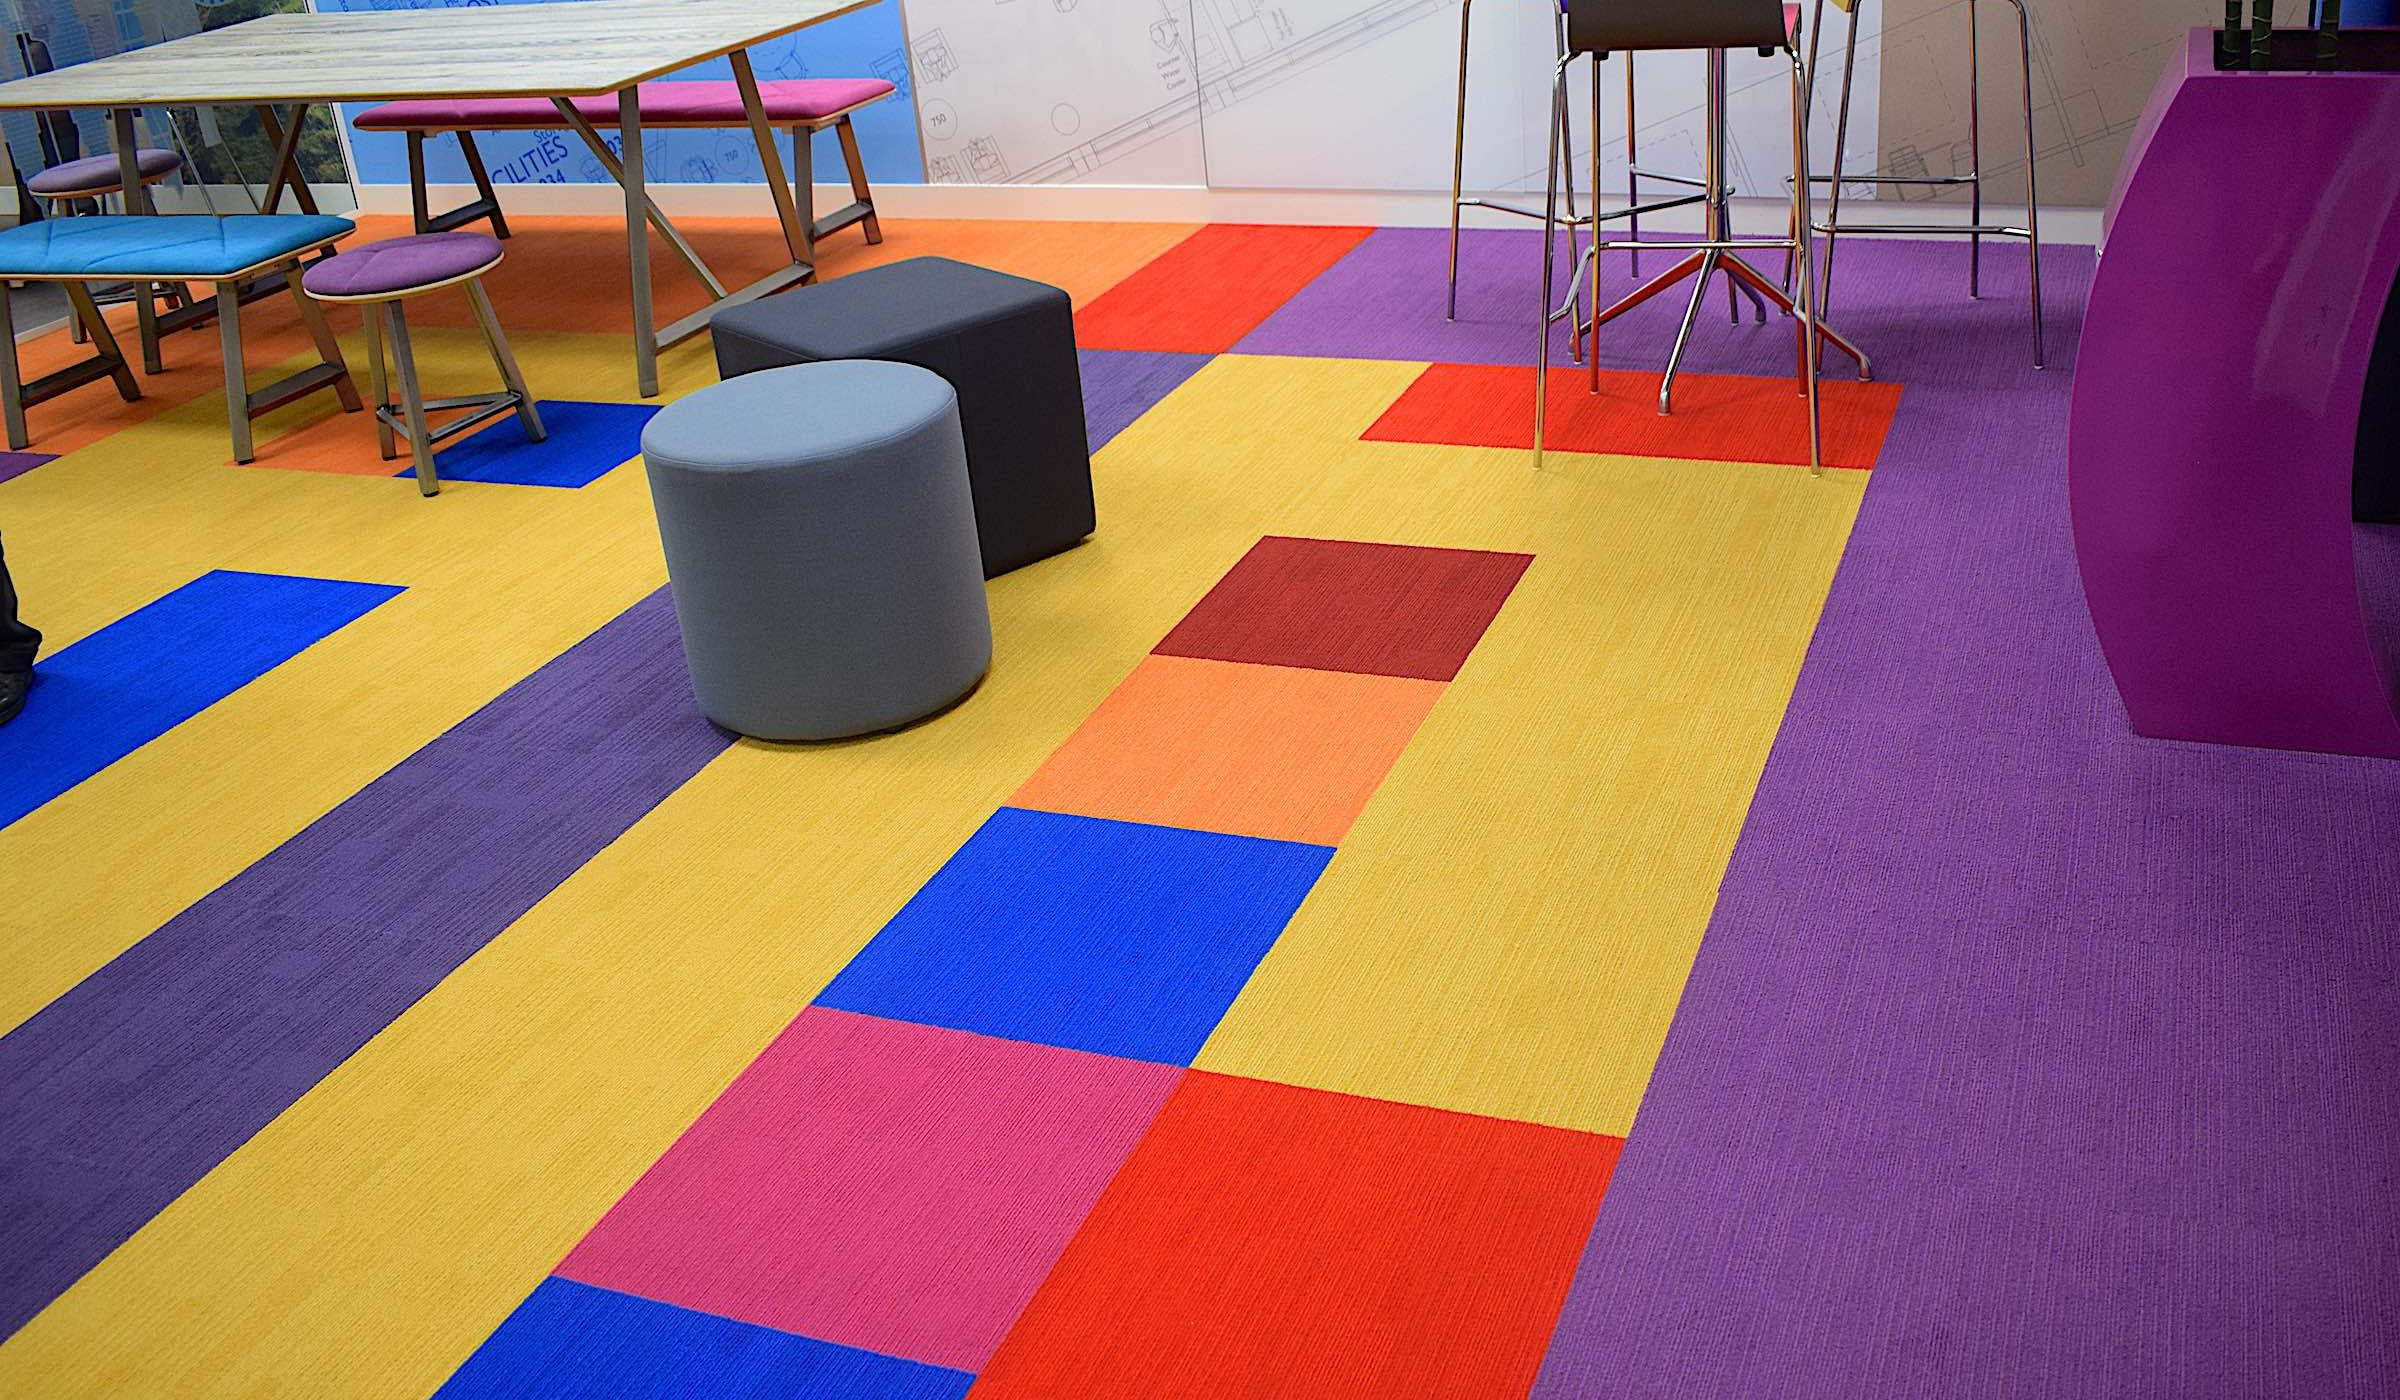 Highlights | Paragon Carpet Tiles | Commercial Carpet Tiles | Design Carpet Tiles 1